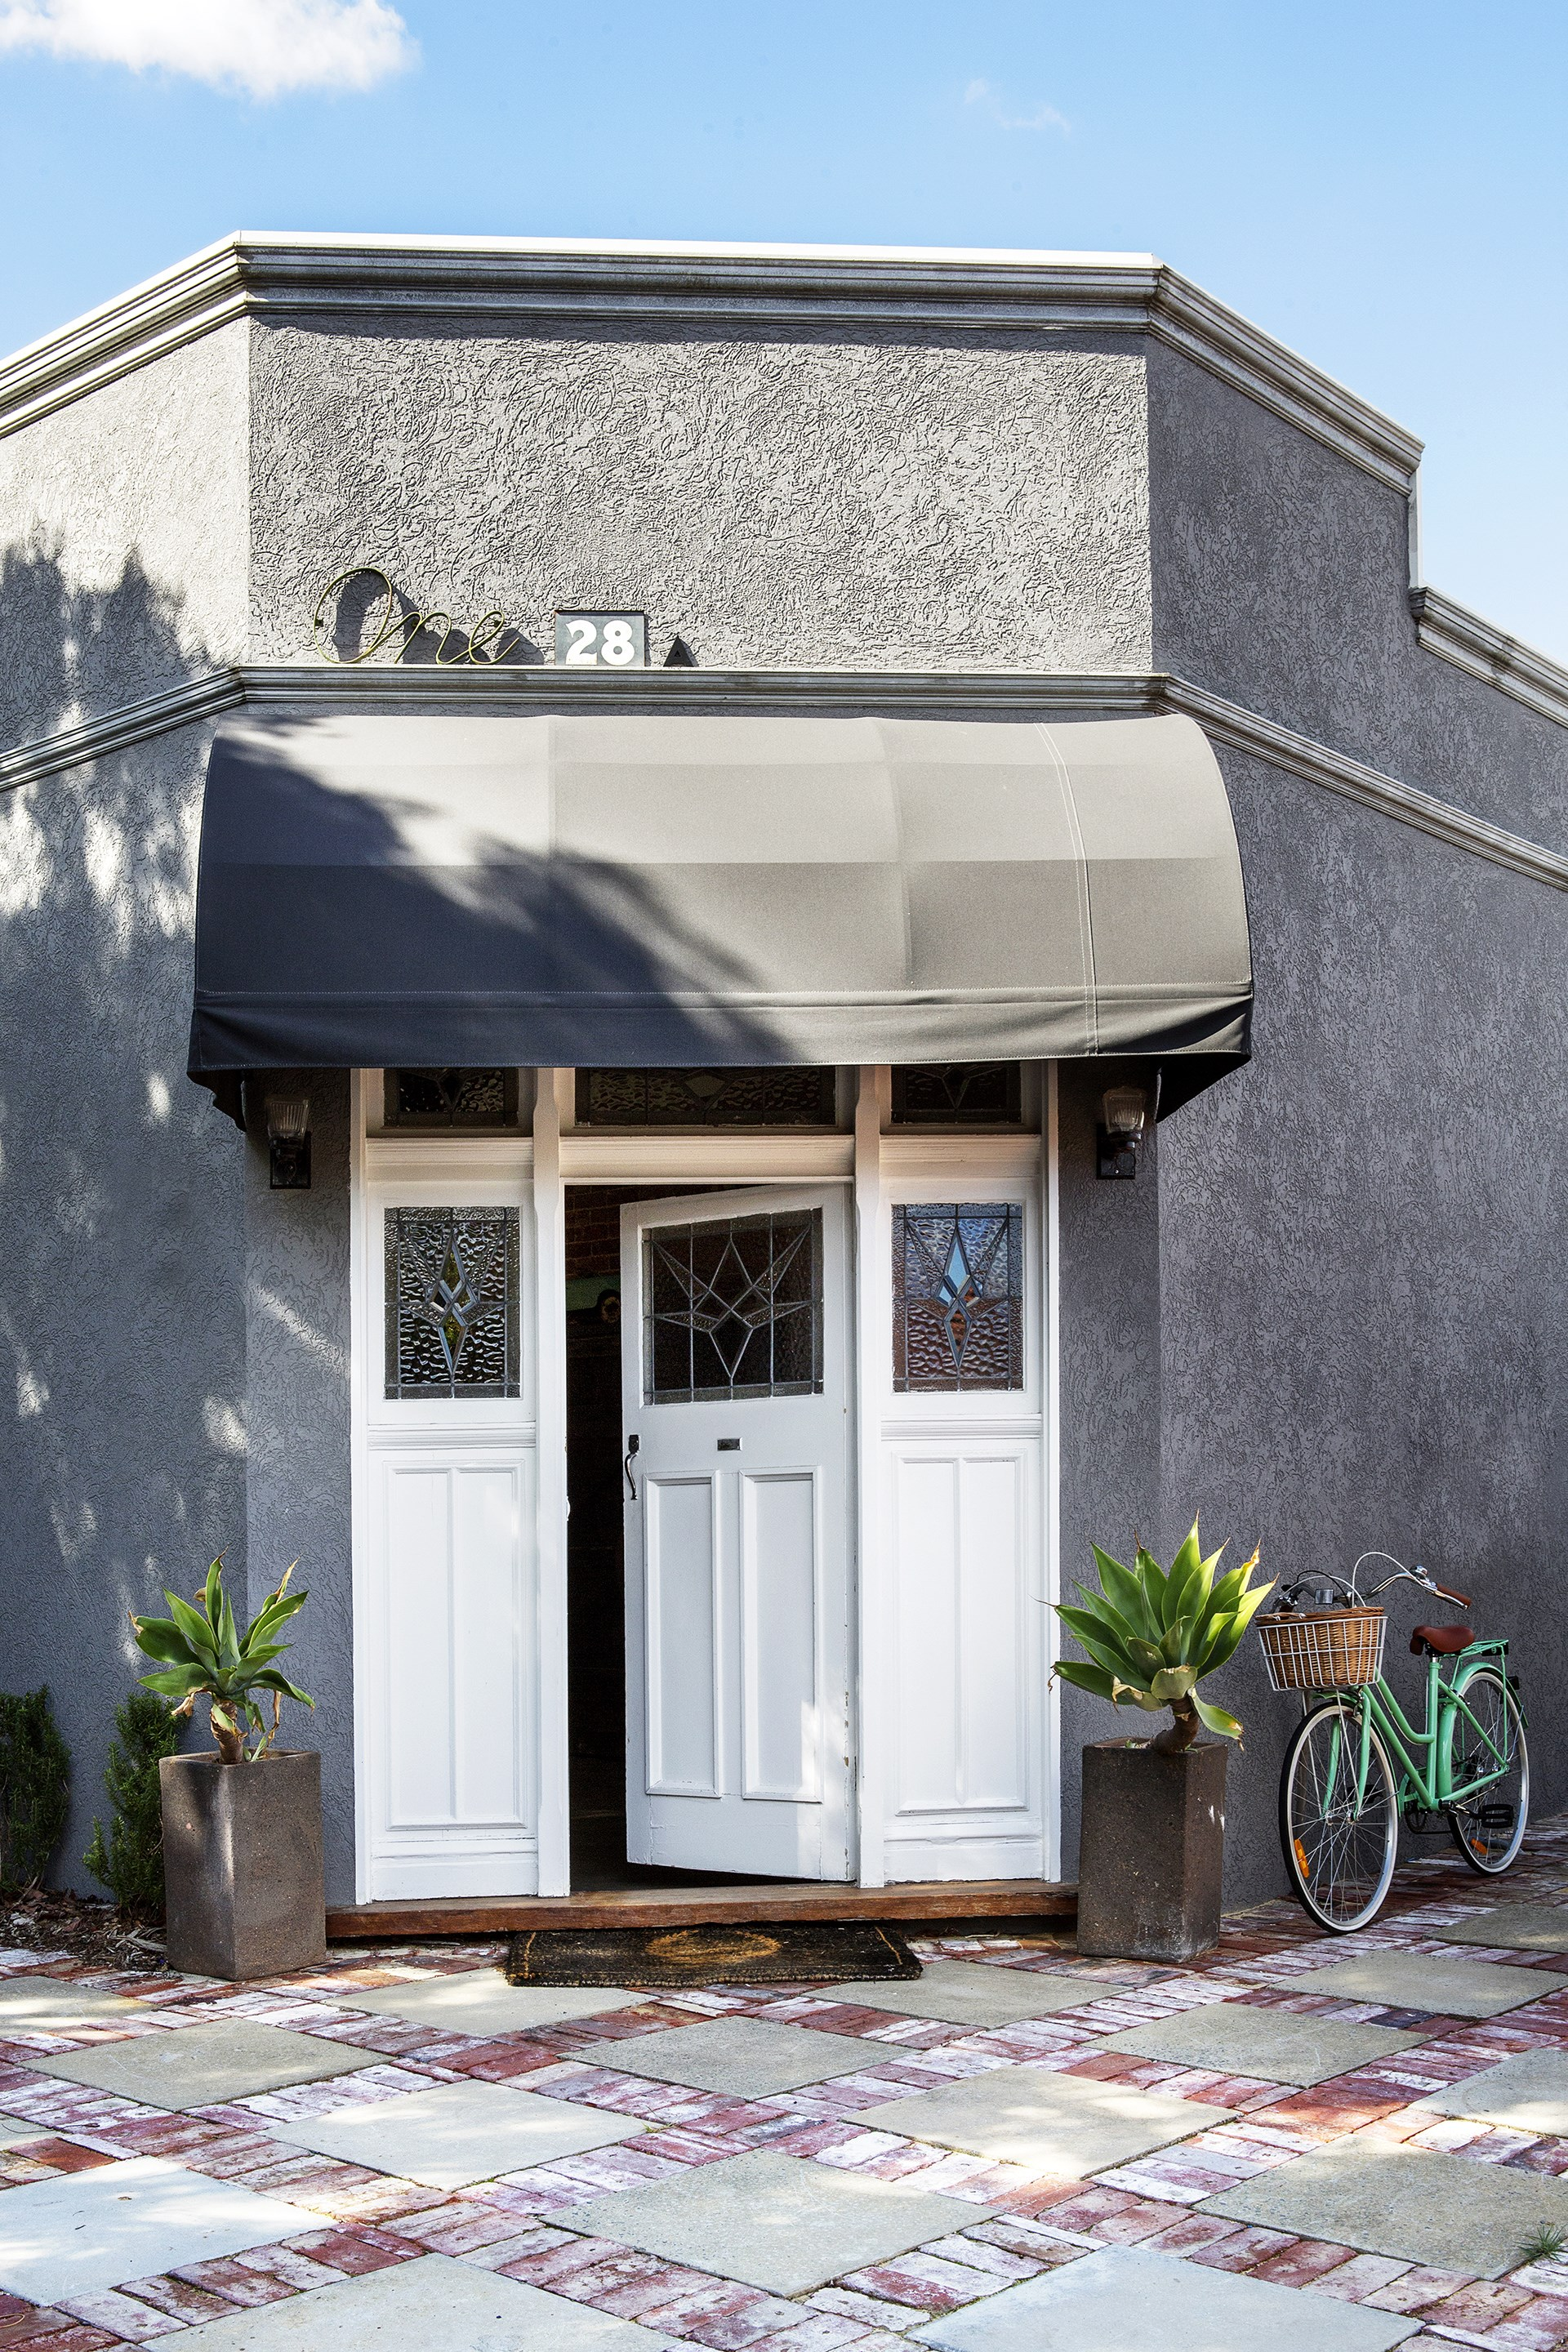 Despite its Art Deco corner shop appearance, Carla and Ben Karsakis's Perth home is only three years old. The exterior walls are made from rendered structural insulated panels; their high thermal mass helps the home stay comfortable year-round.